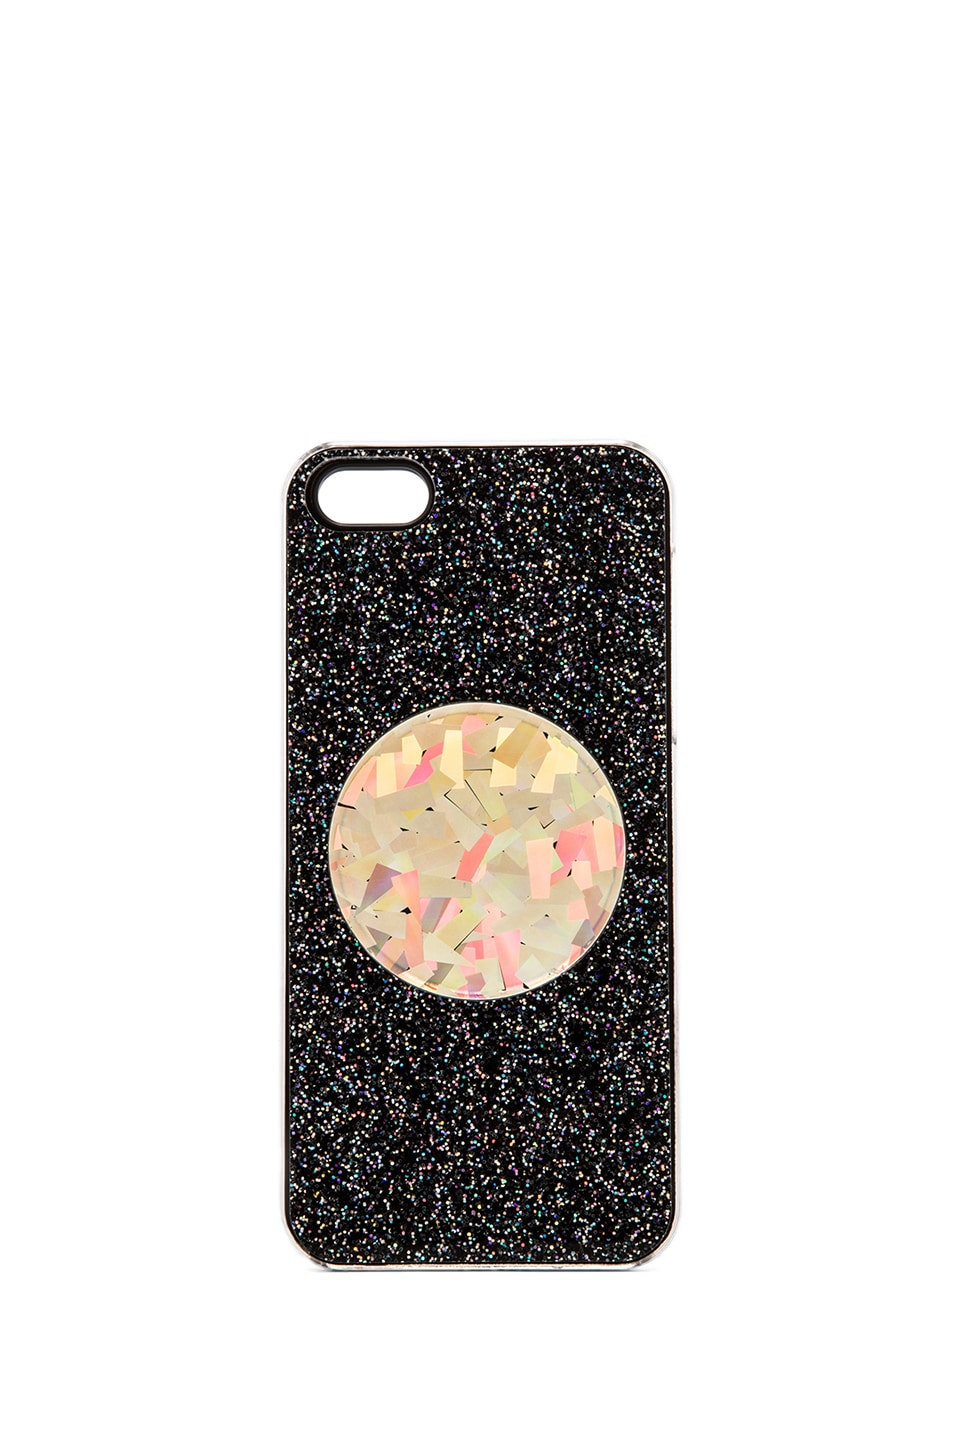 ZERO GRAVITY Jupiter iPhone 5 Case in Glitter